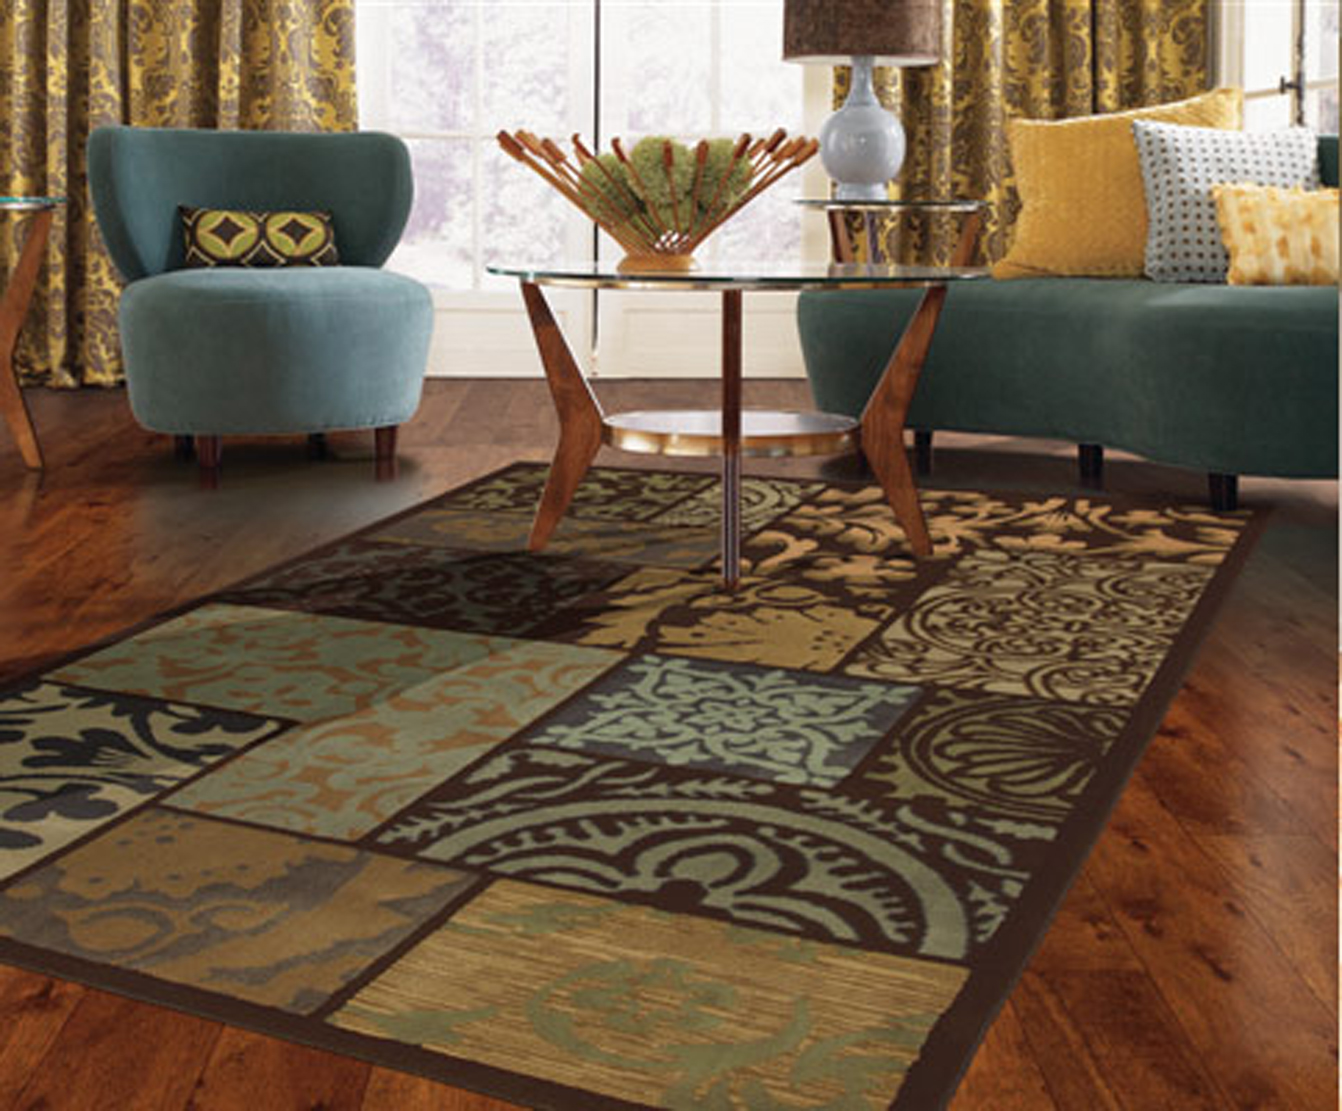 Colorful area rugs unique rugs for the living room - Decorating with area rugs ...